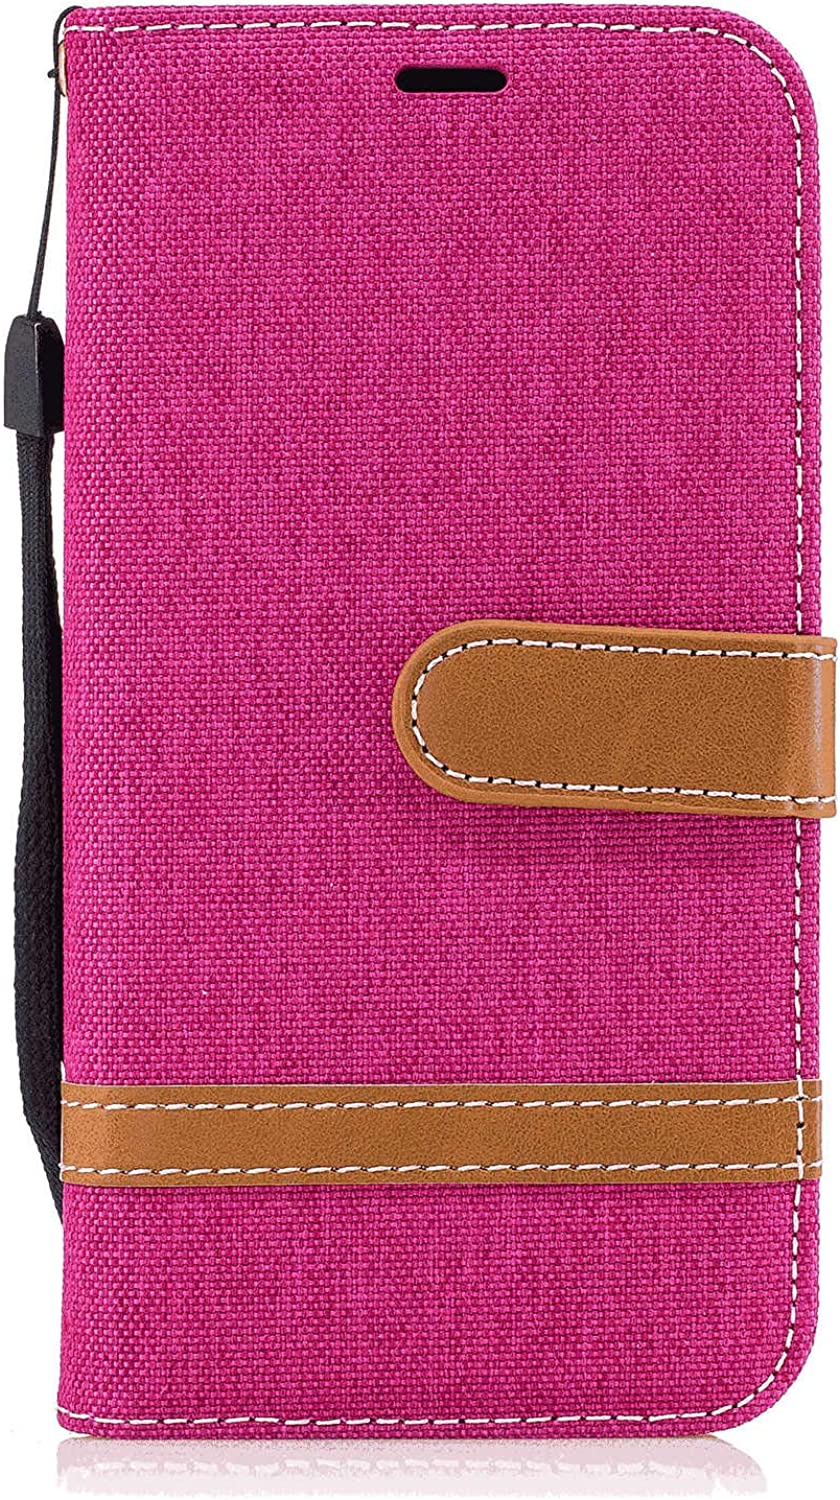 Cover for Leather Kickstand Card Holders Wallet case Extra-Durable Business Flip Cover iPhone 7 Plus Flip Case